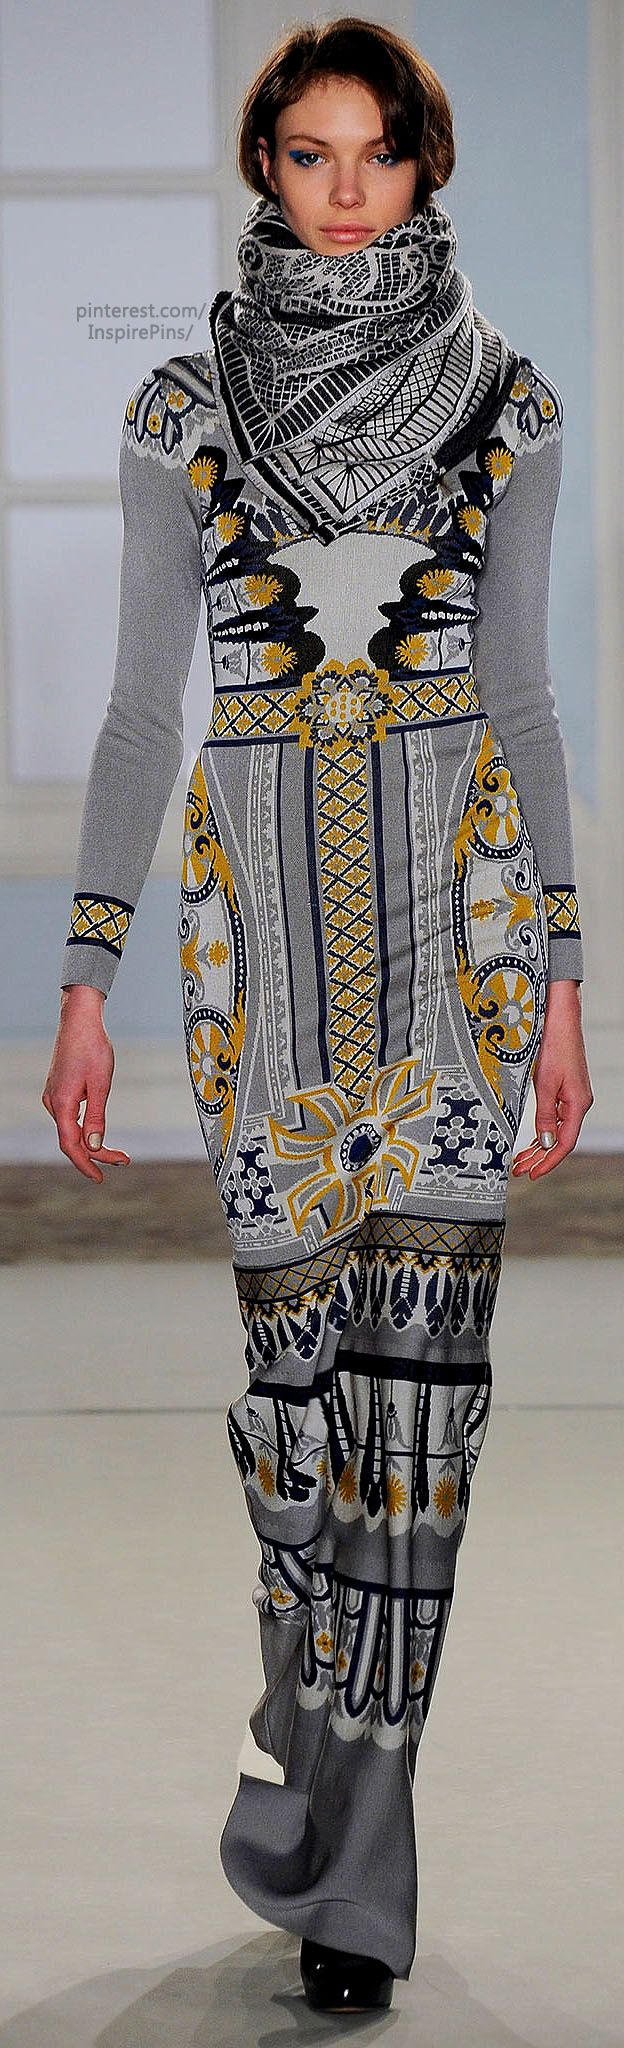 Amazing print. Fall 2014 Ready-to-Wear Temperley London.  I kind of love it, but I think guys wouldn't get it.